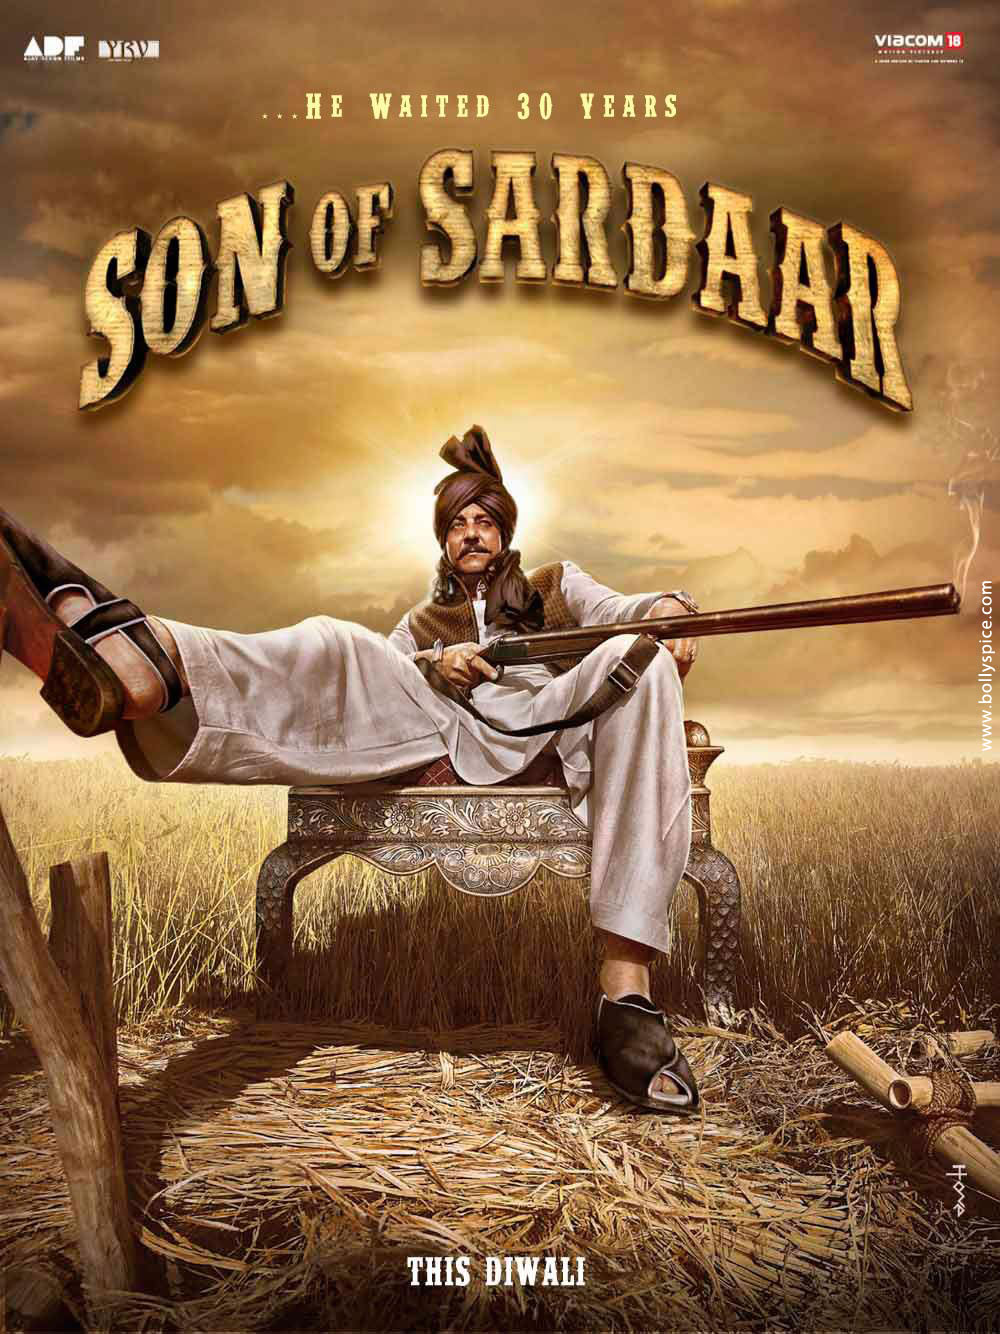 12may sonofsardar poster01 Posters for the movie Son of Sardar released!